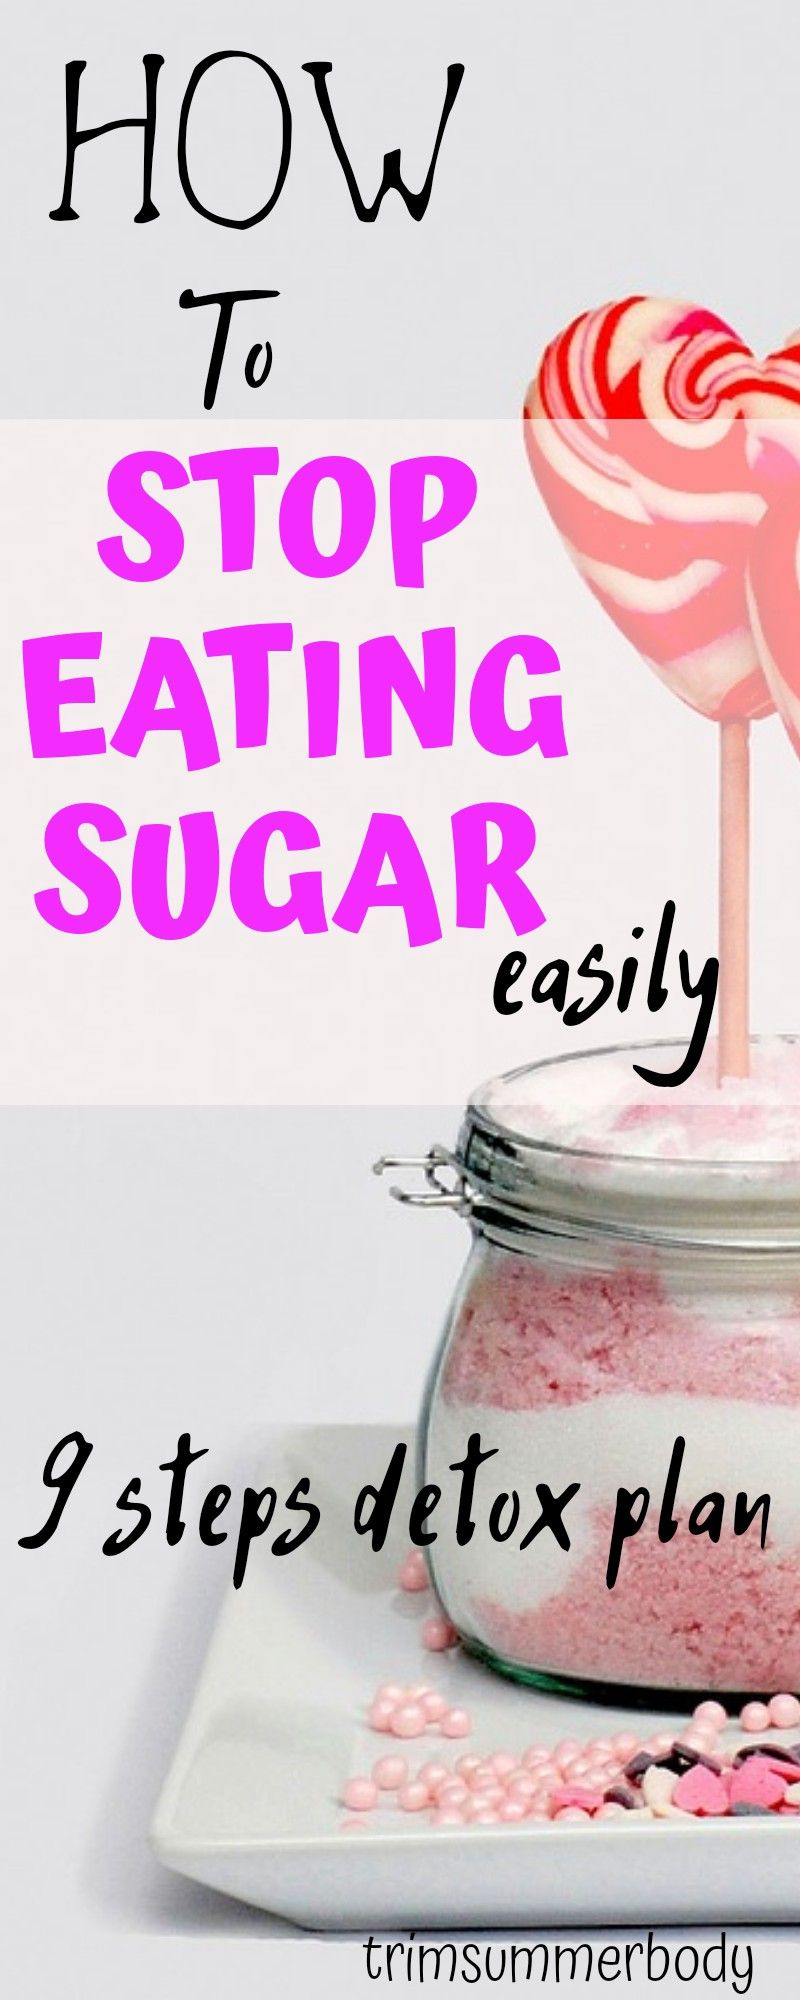 Stop sugar addiction and stop eating sugar with this detox plan How to stop sugar addiction | reduce sugar craving to lose weight | clean eating for weight loss | stop eating sugar to be healthy | burn fat by reducing sugar .